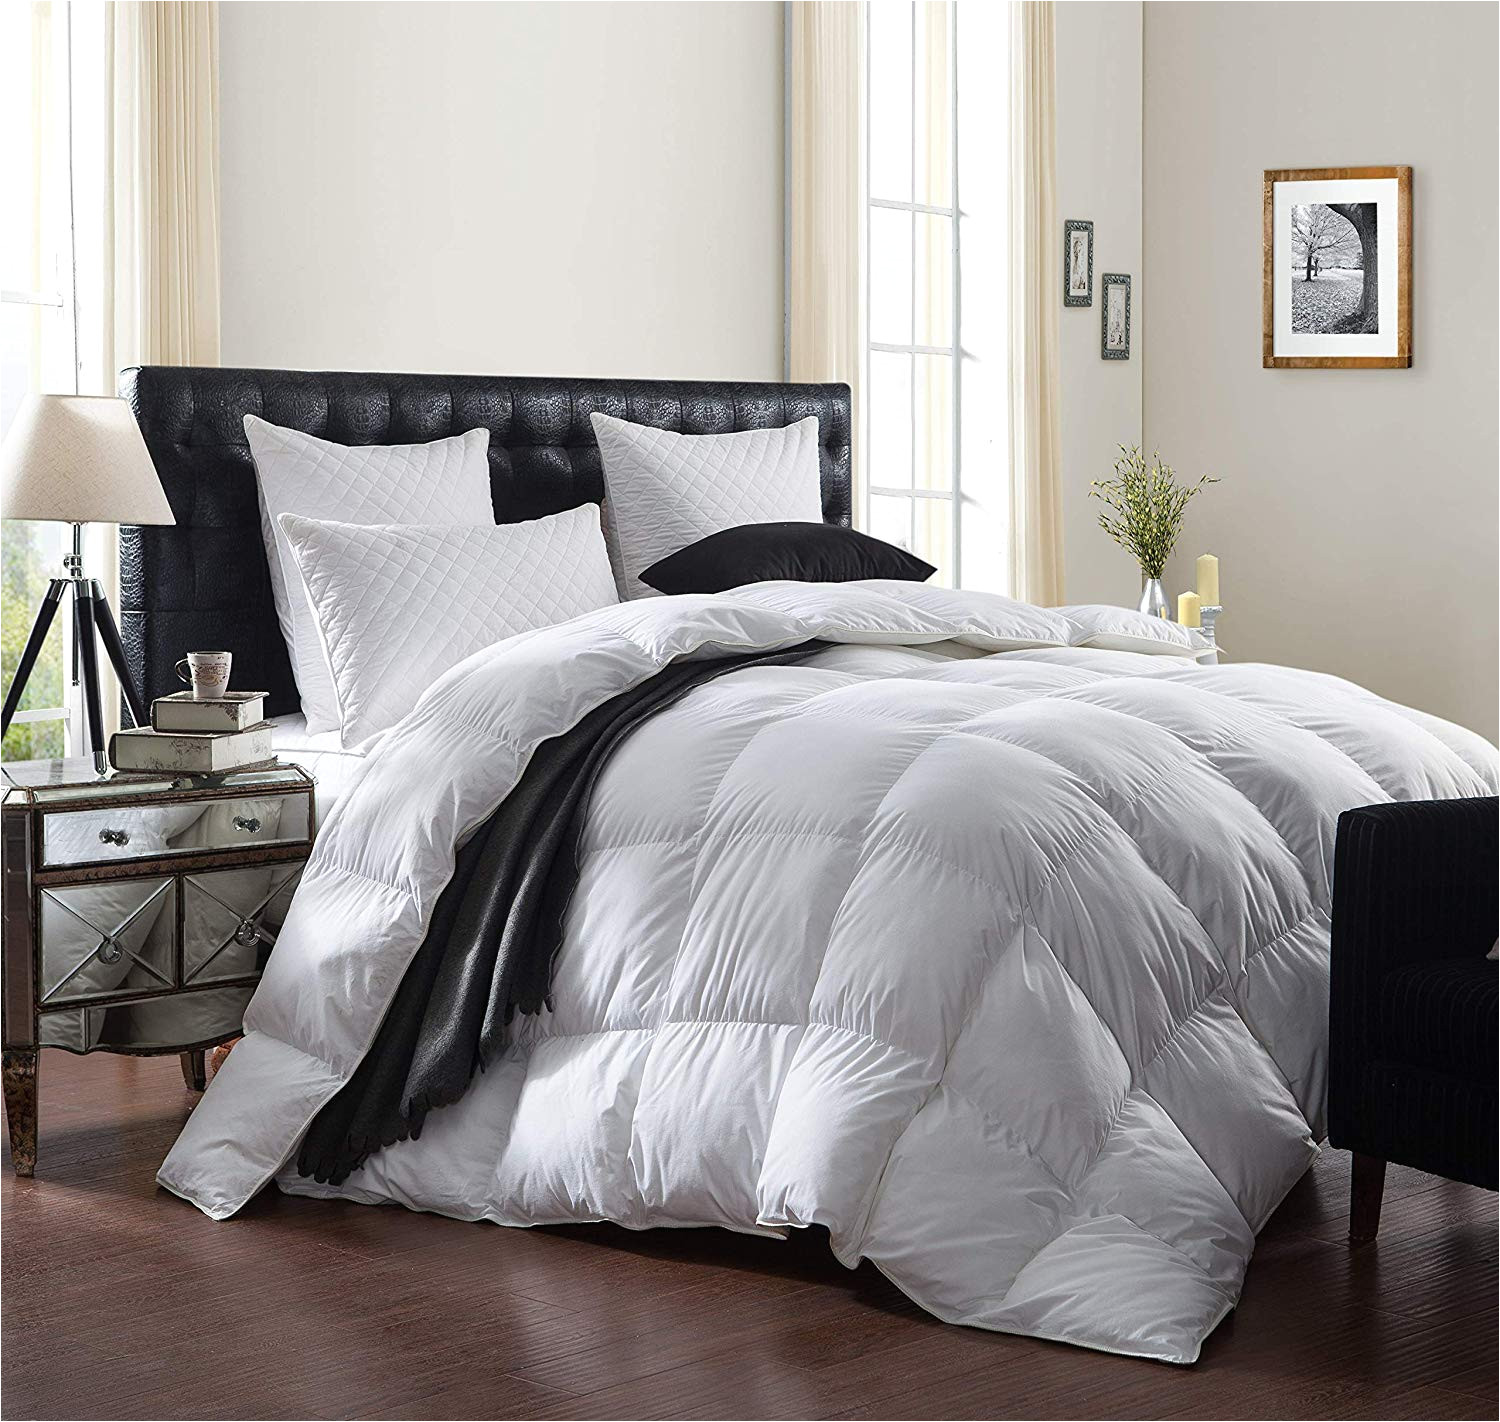 amazon com luxurious 1200 thread count goose down comforter duvet insert queen size 1200tc 100 egyptian cotton cover 750 fill power